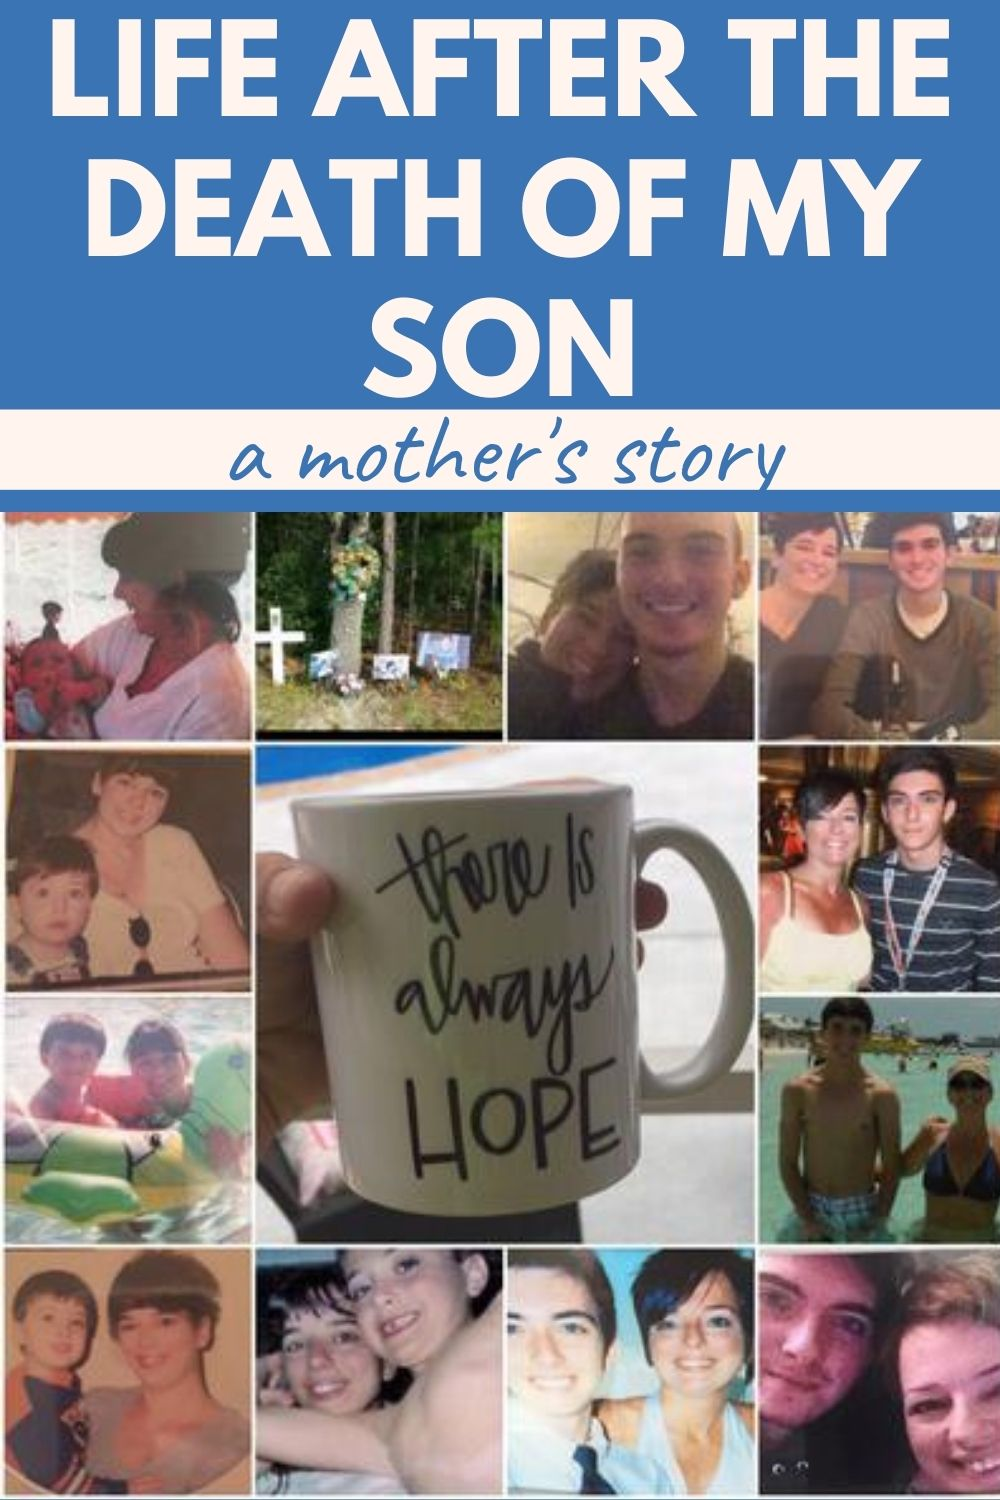 Life after the death of my son - a mother's story